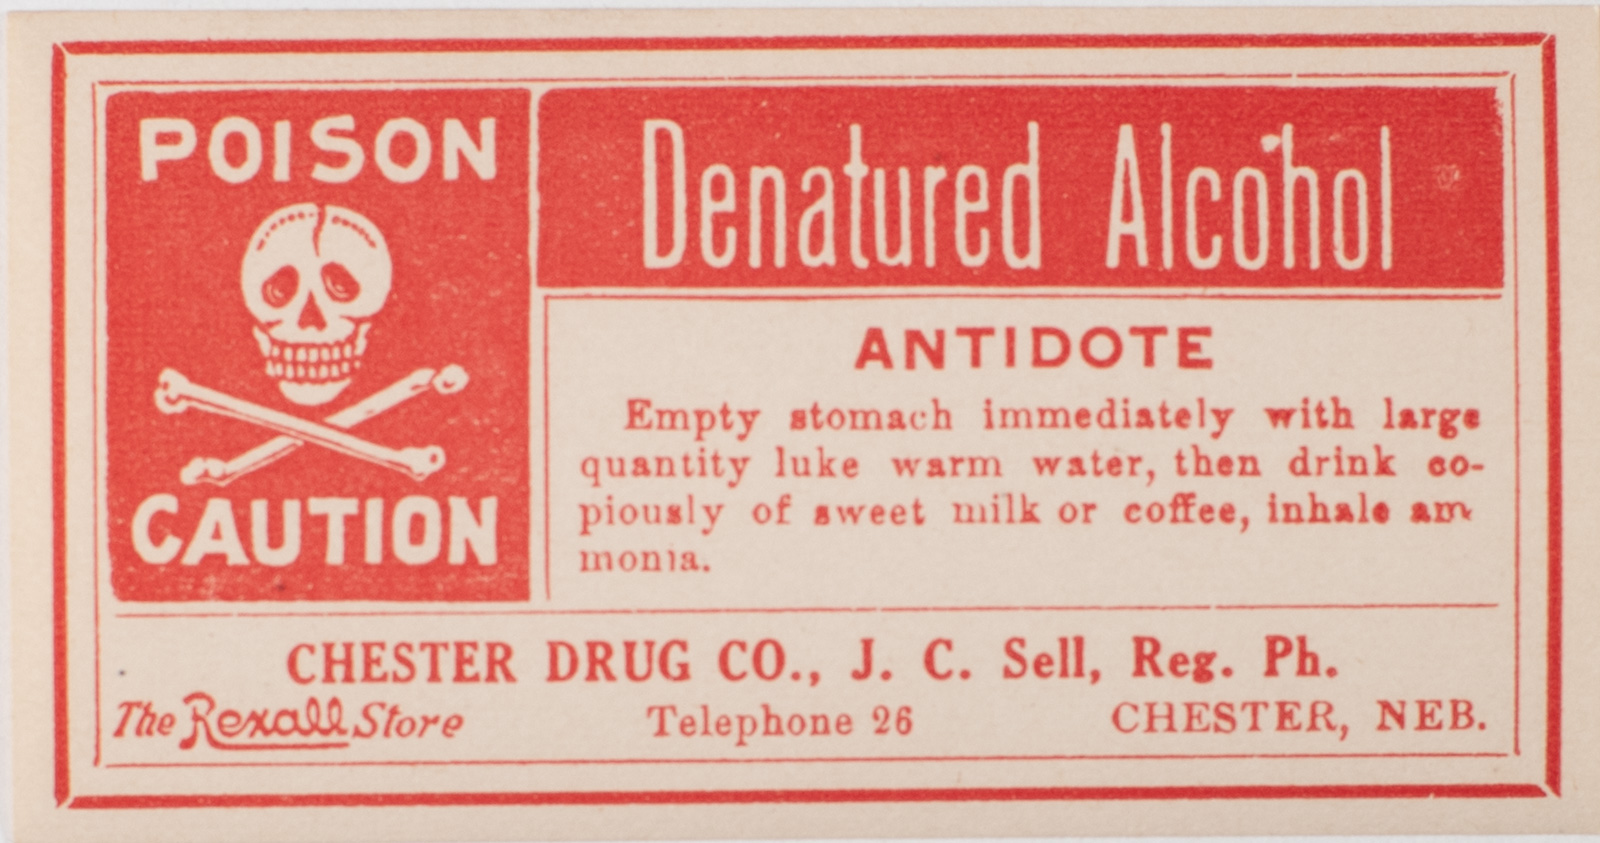 Denatured Alcohol Label from Chester Drug Co Image